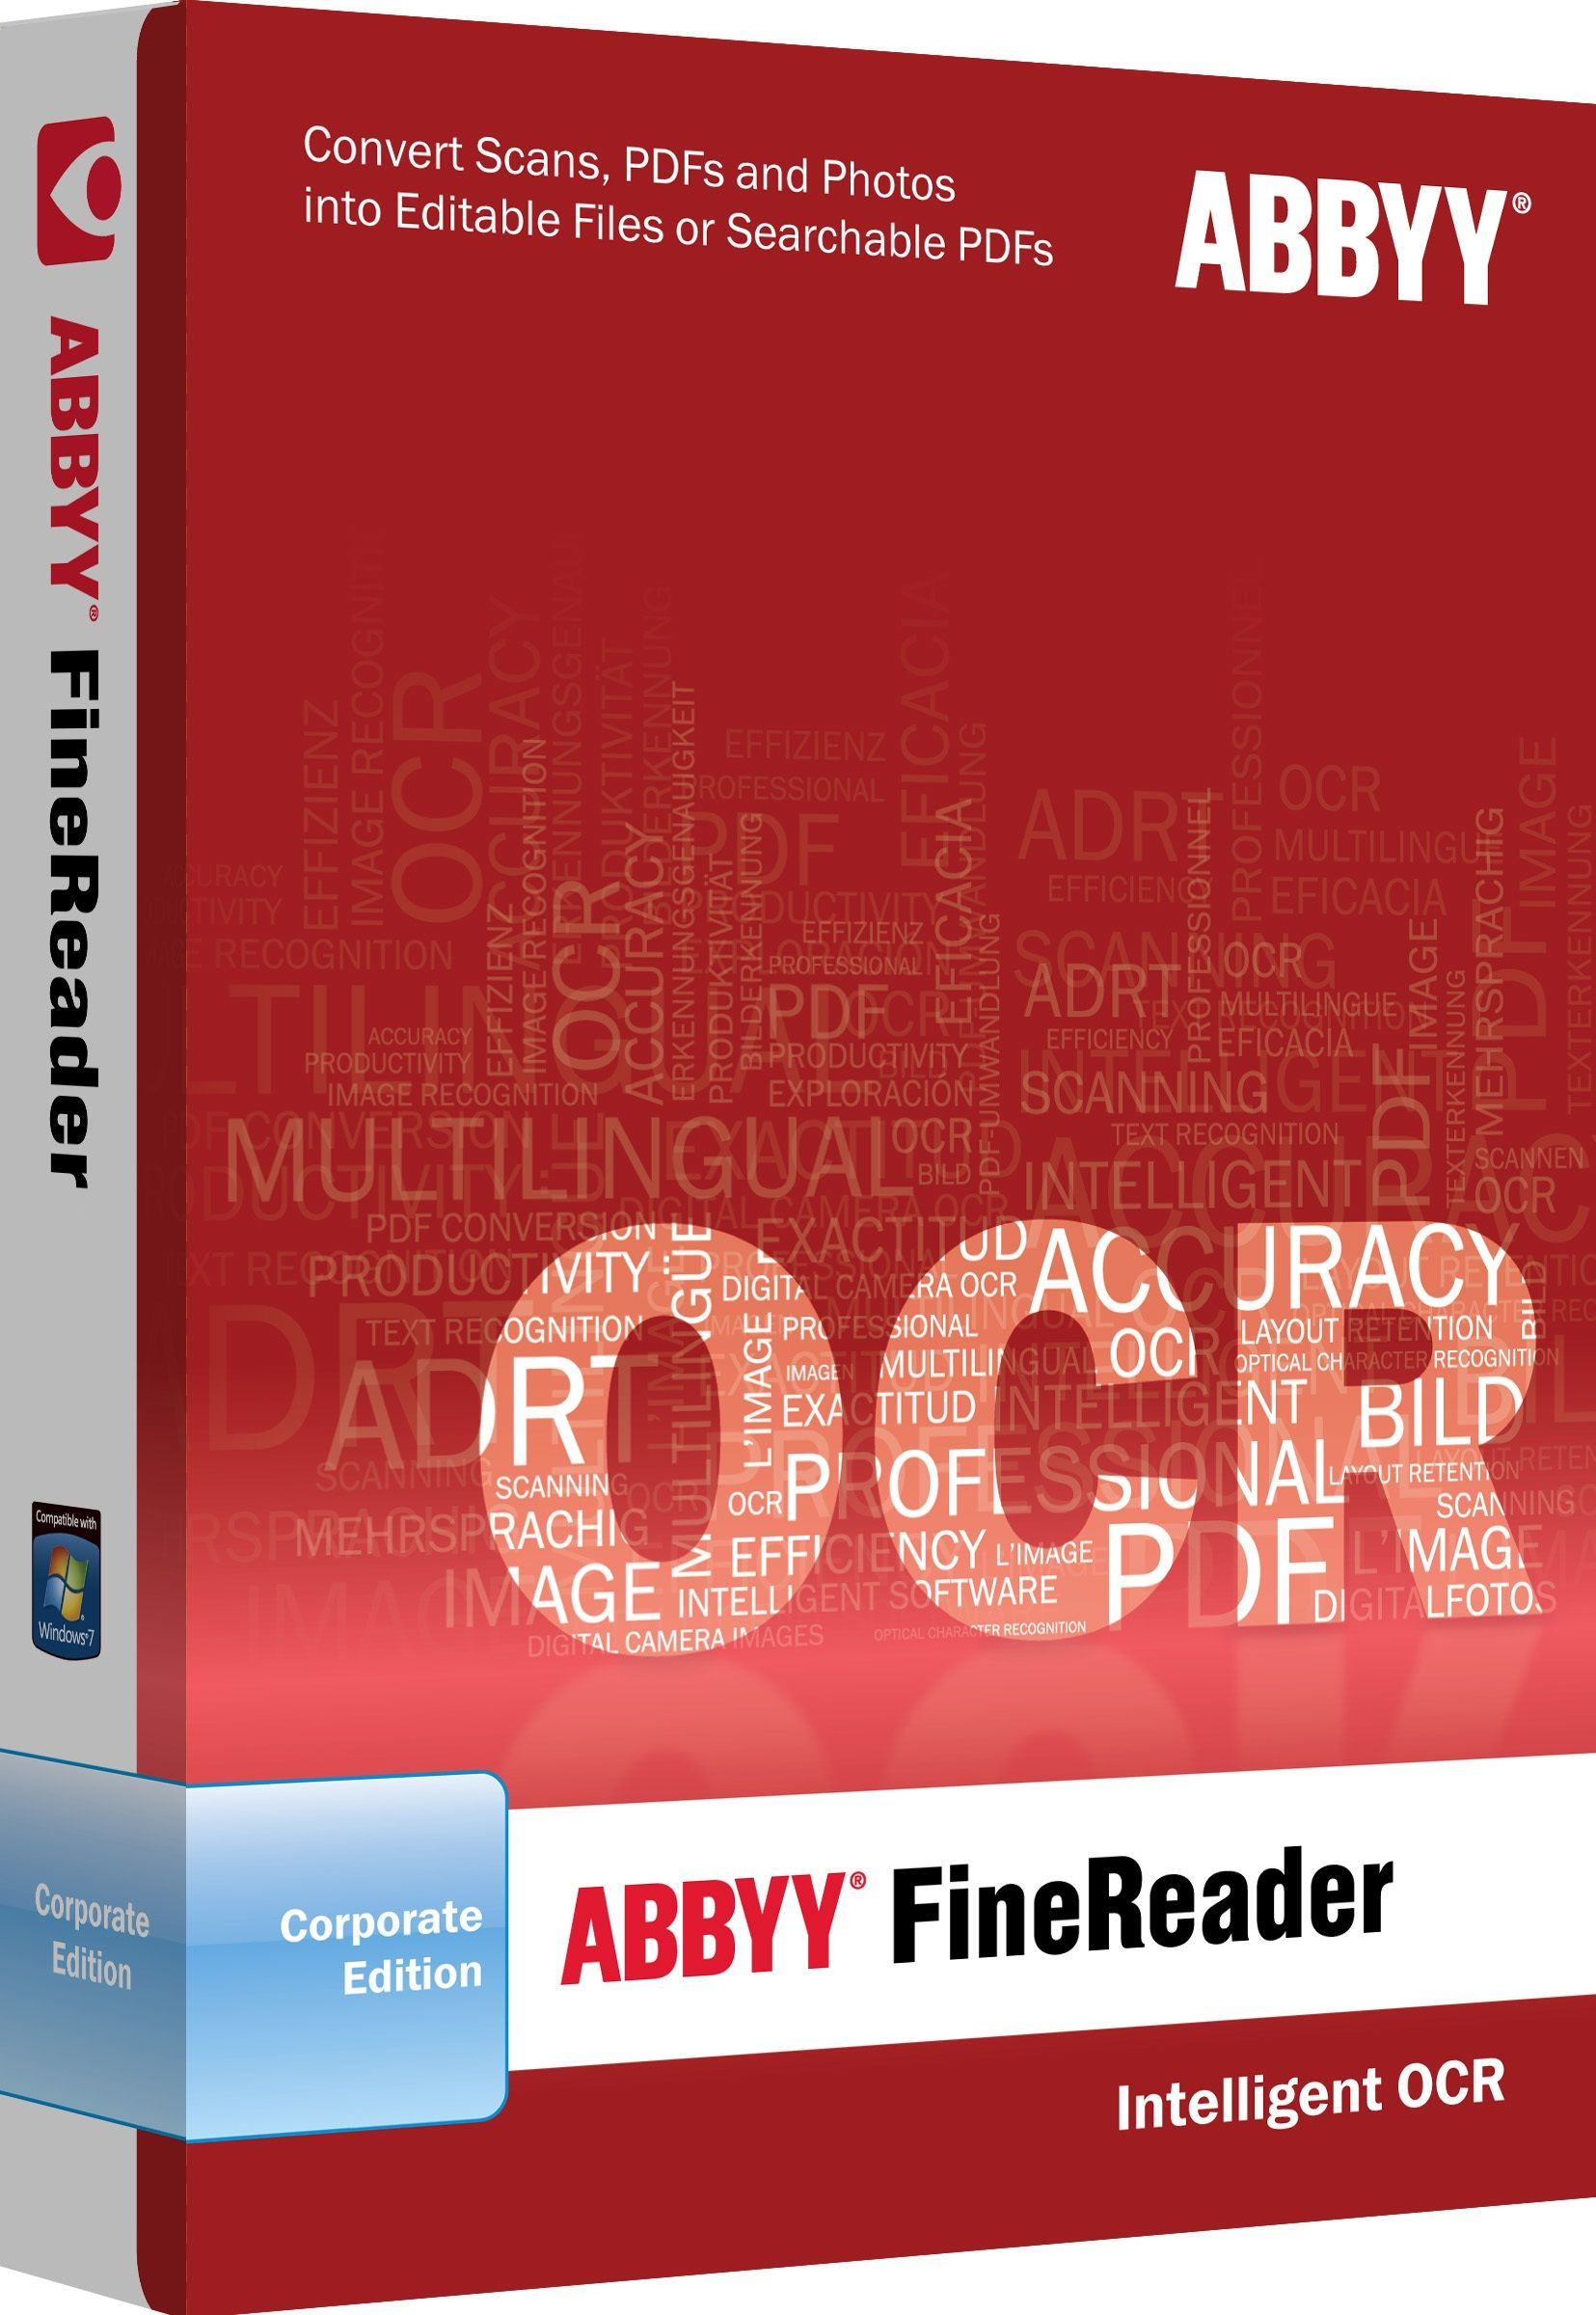 ABBYY FineReader v11.0.102.536 Corporate Edition